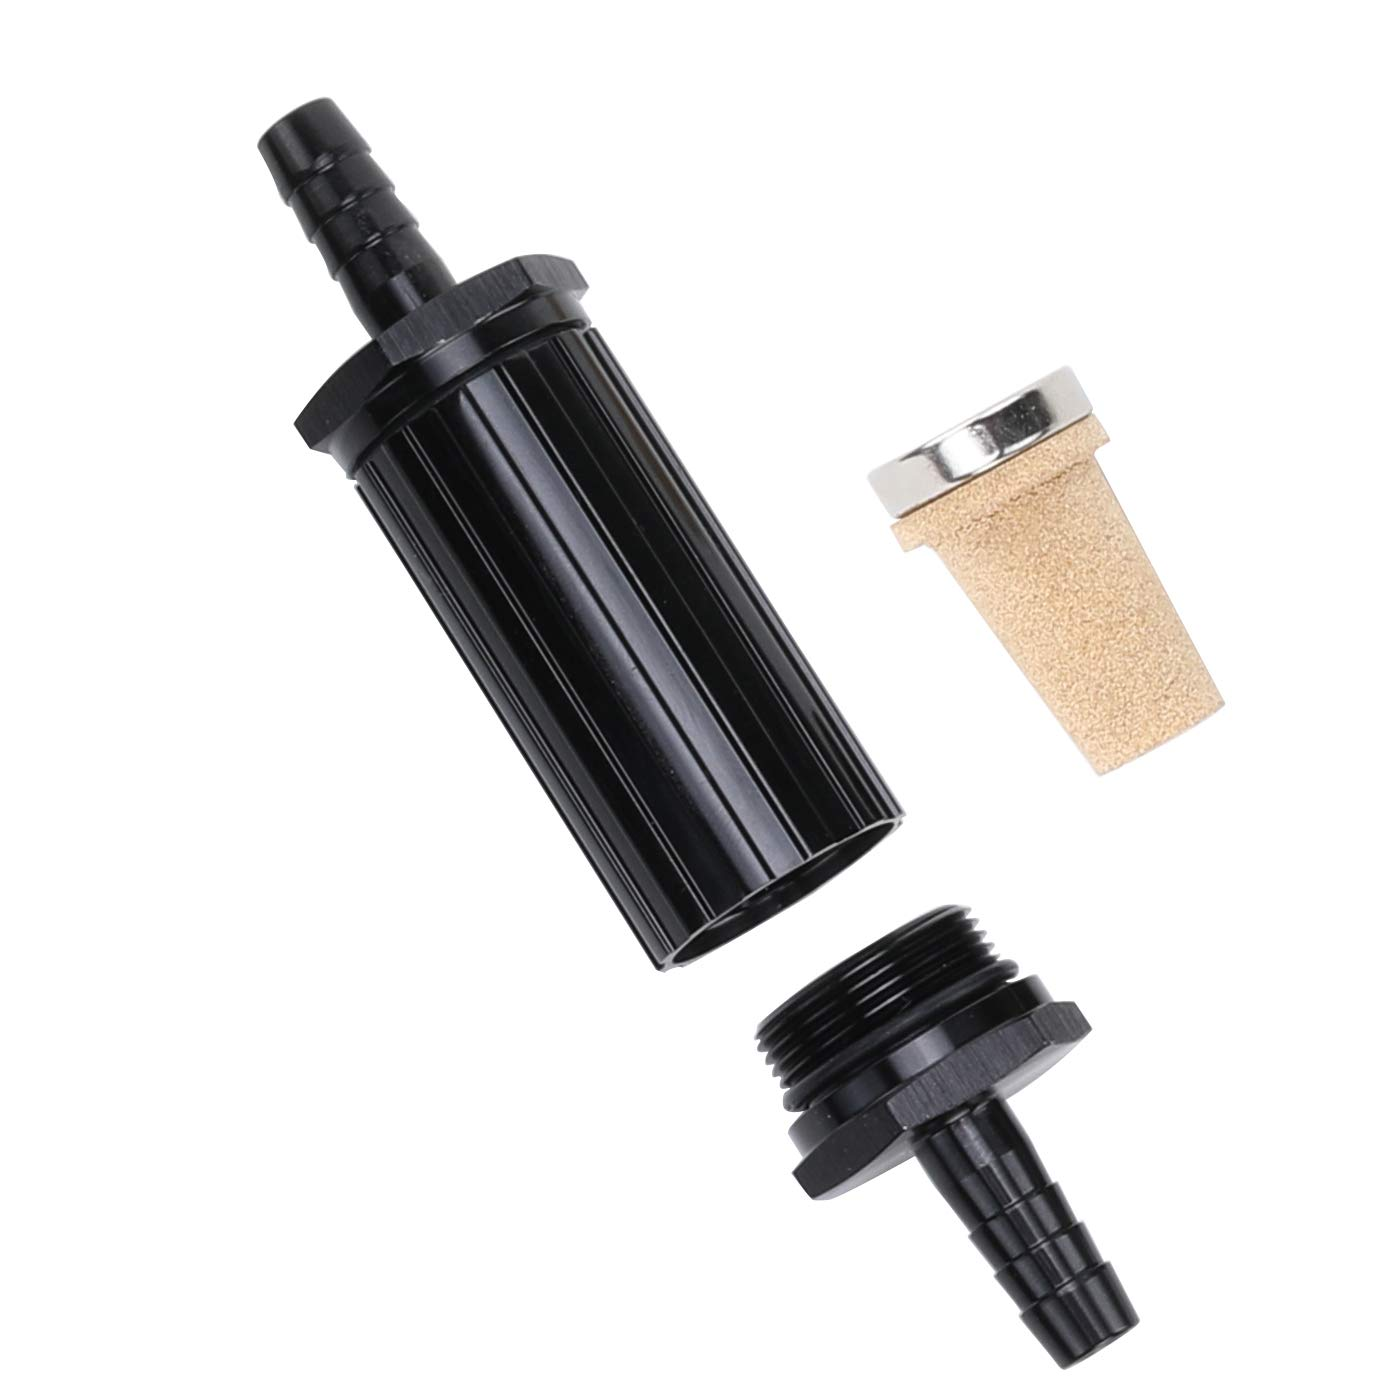 10AN Male Flare Fuel Cell Roll Over Valve Aluminum AN10 Rollover Valve Tank Mounted Fitting Adapter Black and Blue Anodized